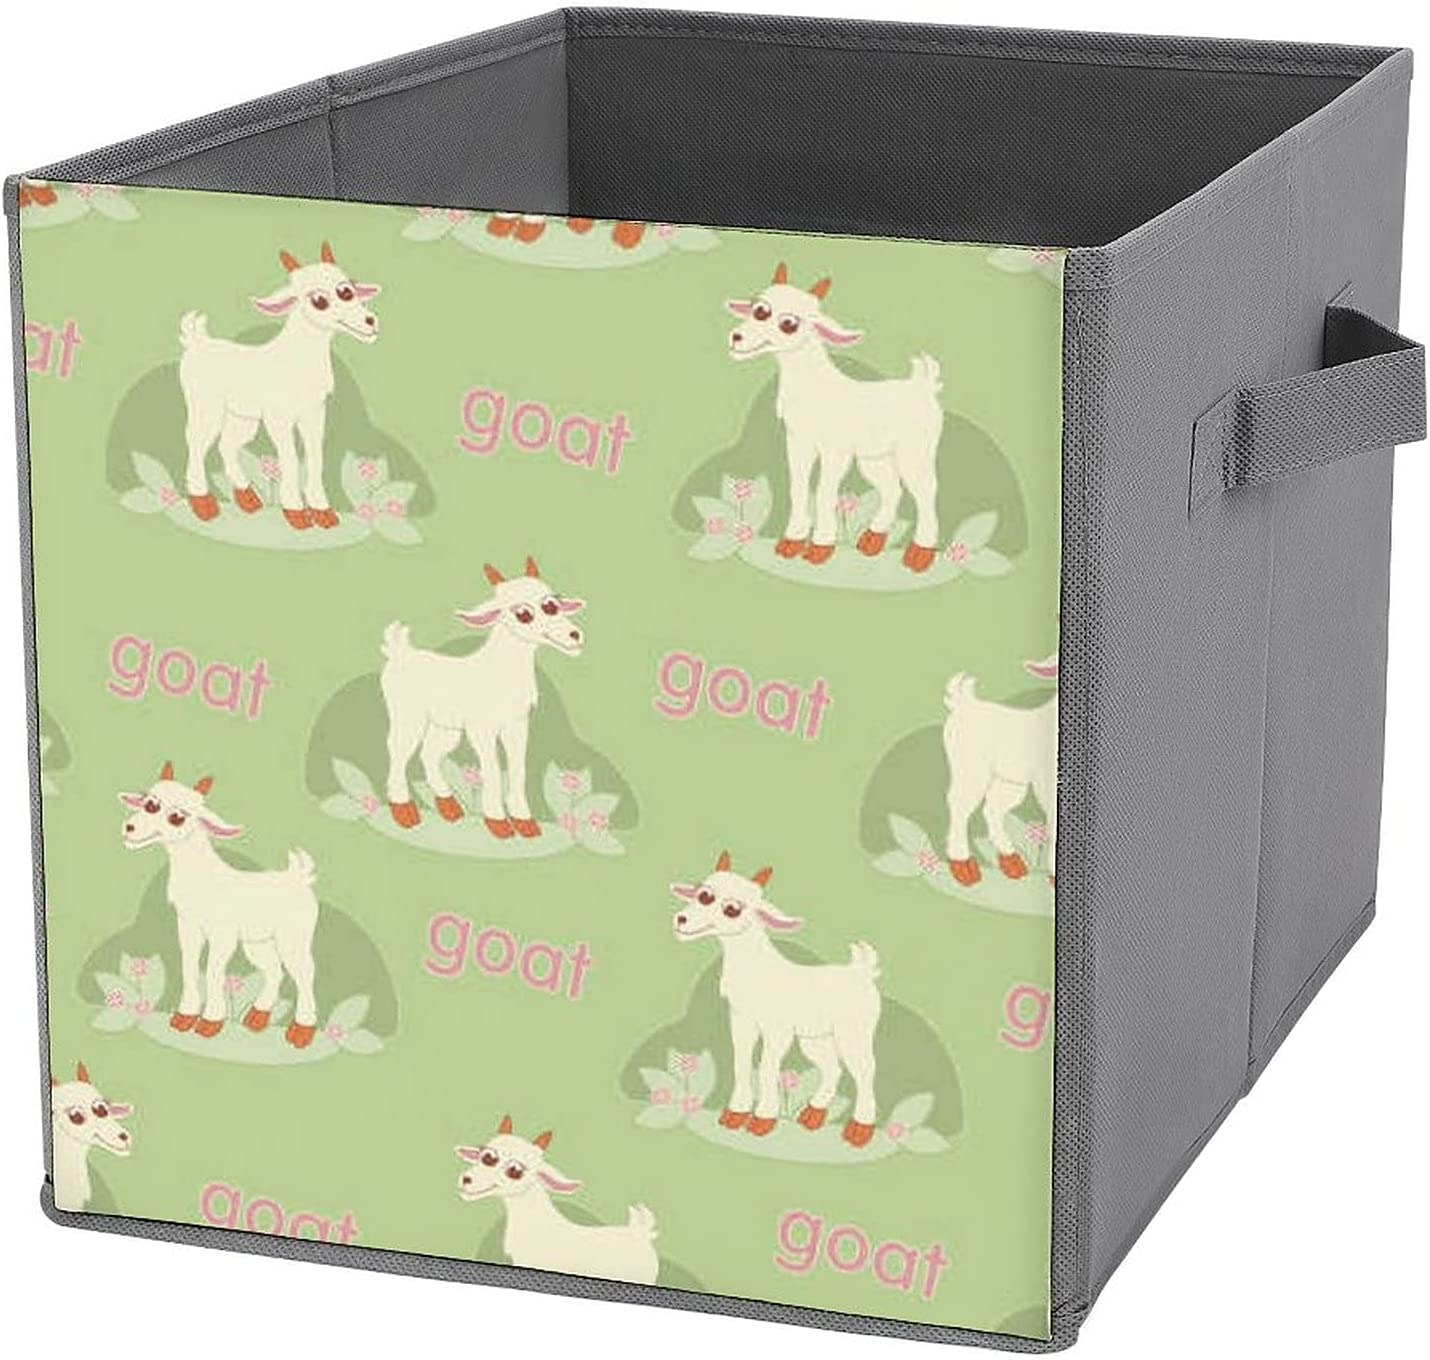 DGHREAW Funny Goat Selling and selling with Leaves Foldable Flowers Under blast sales Bask Storage